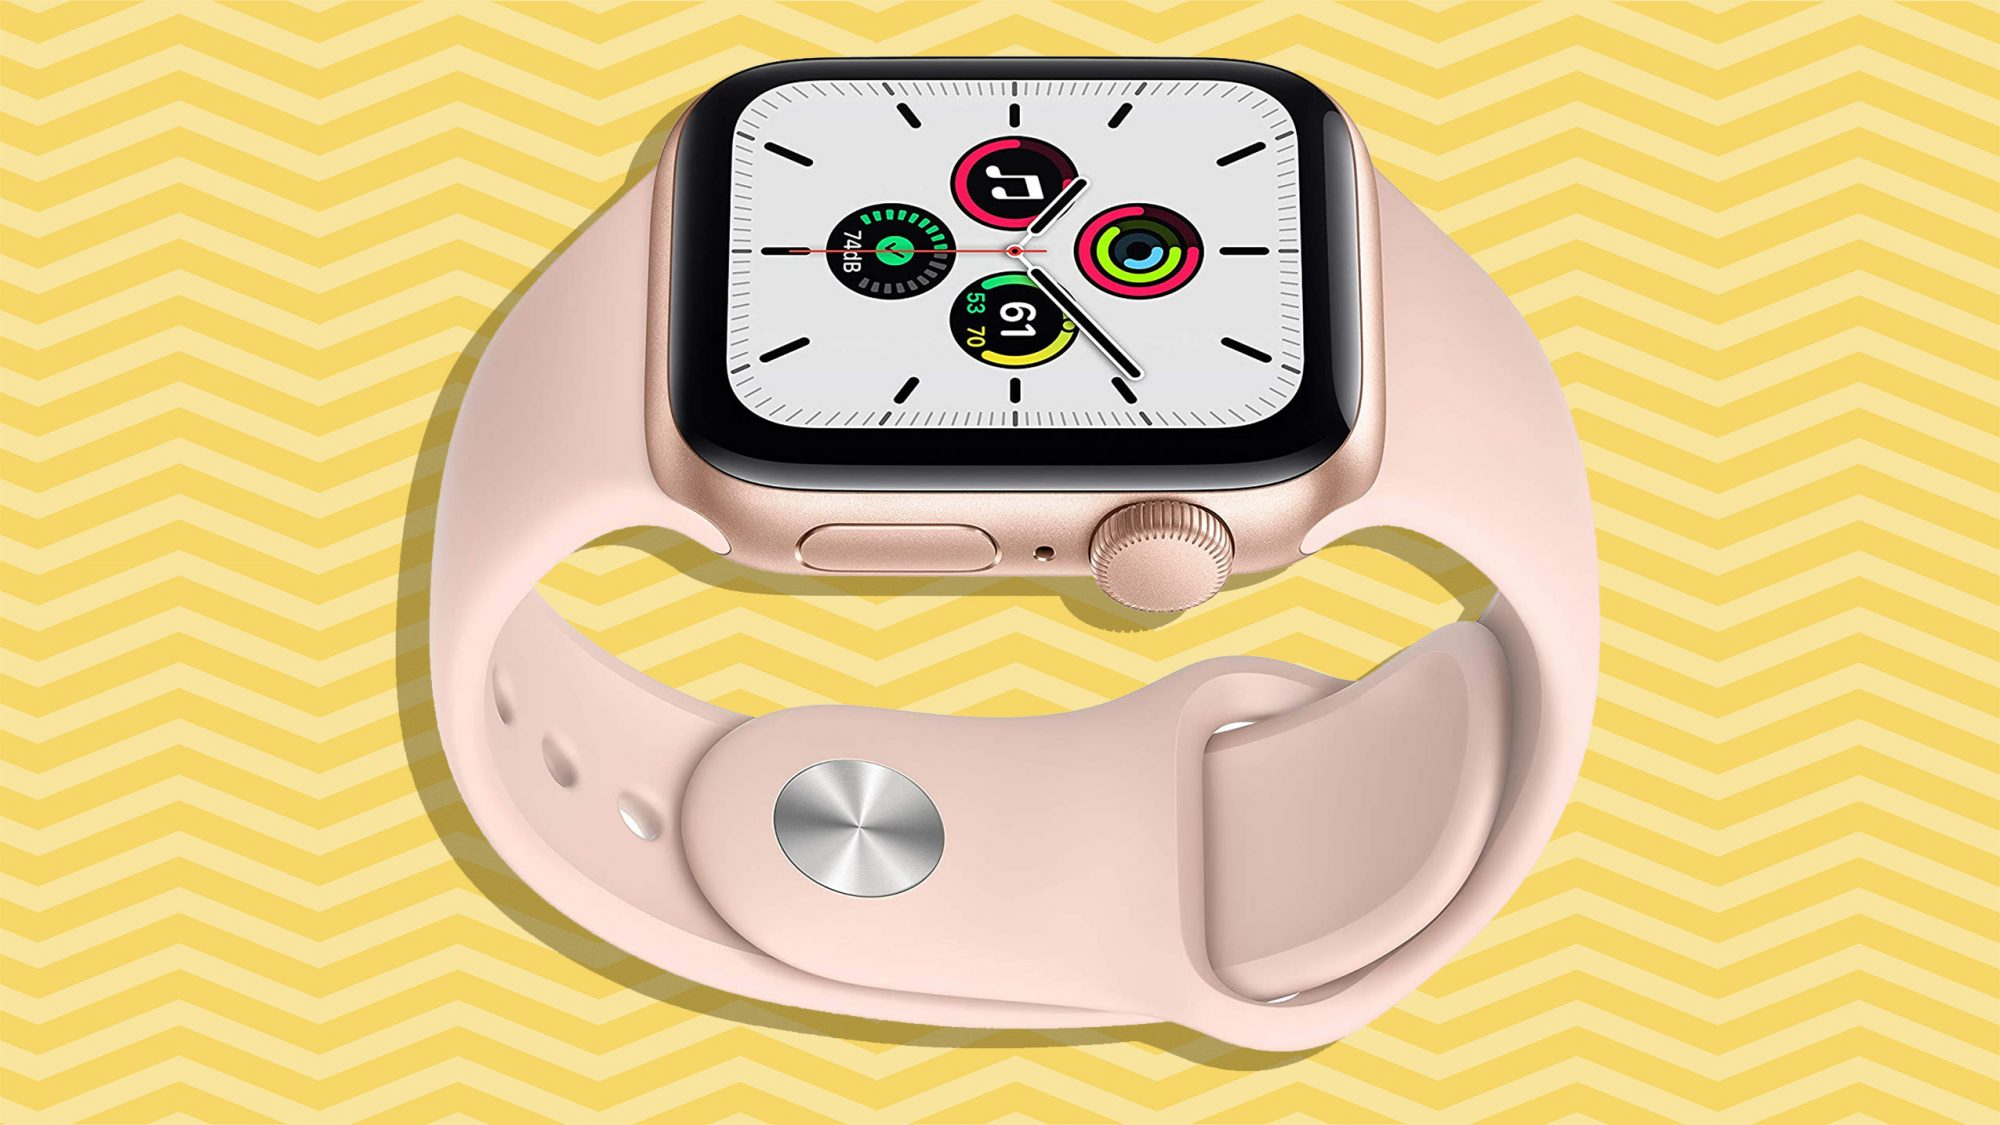 Best gifts for her, gift ideas for women - apple watch on yellow background tout